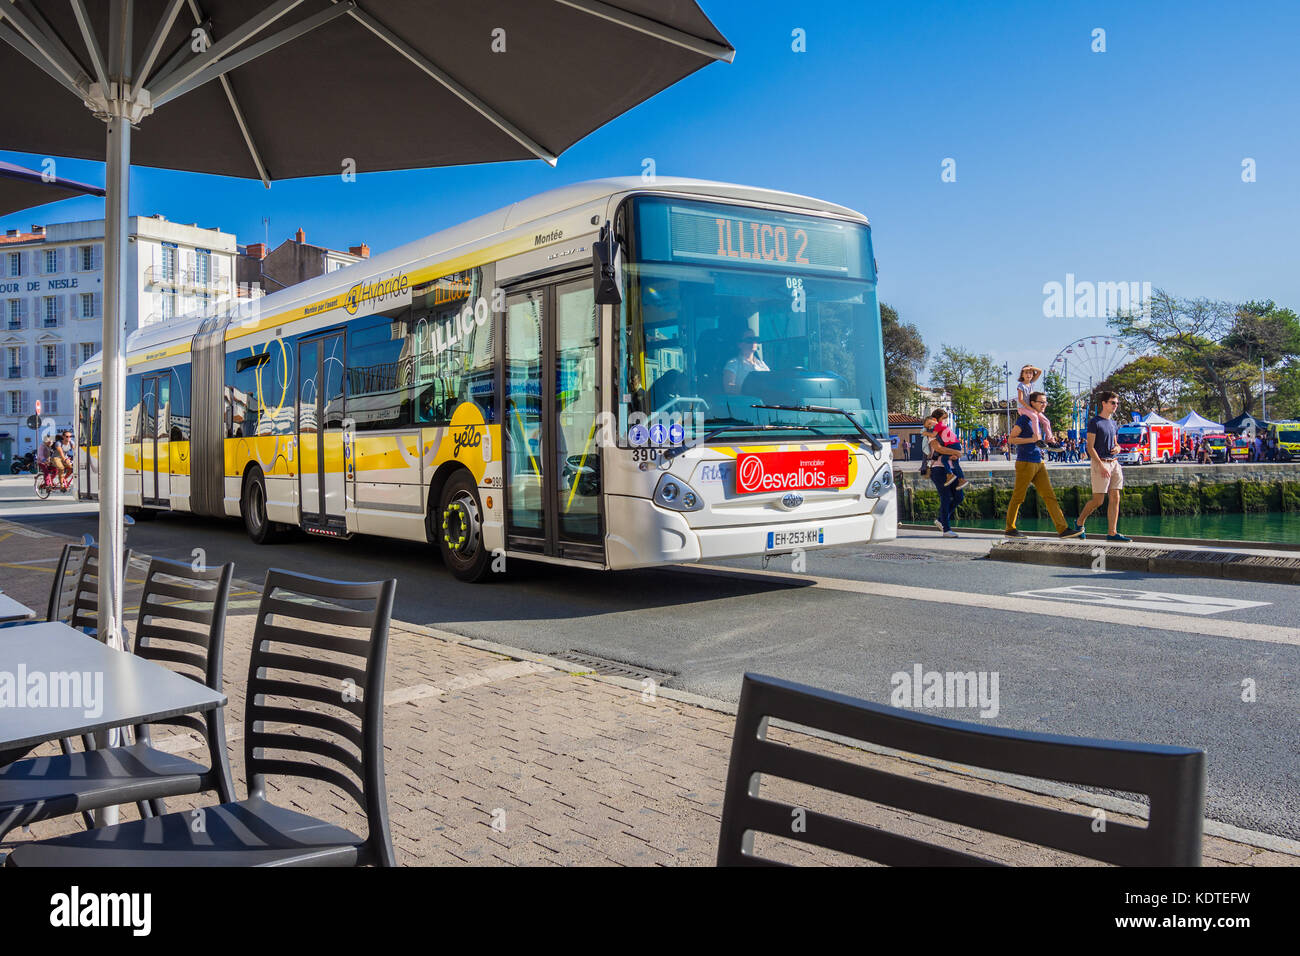 Articulated bus in La Rochelle, France. - Stock Image